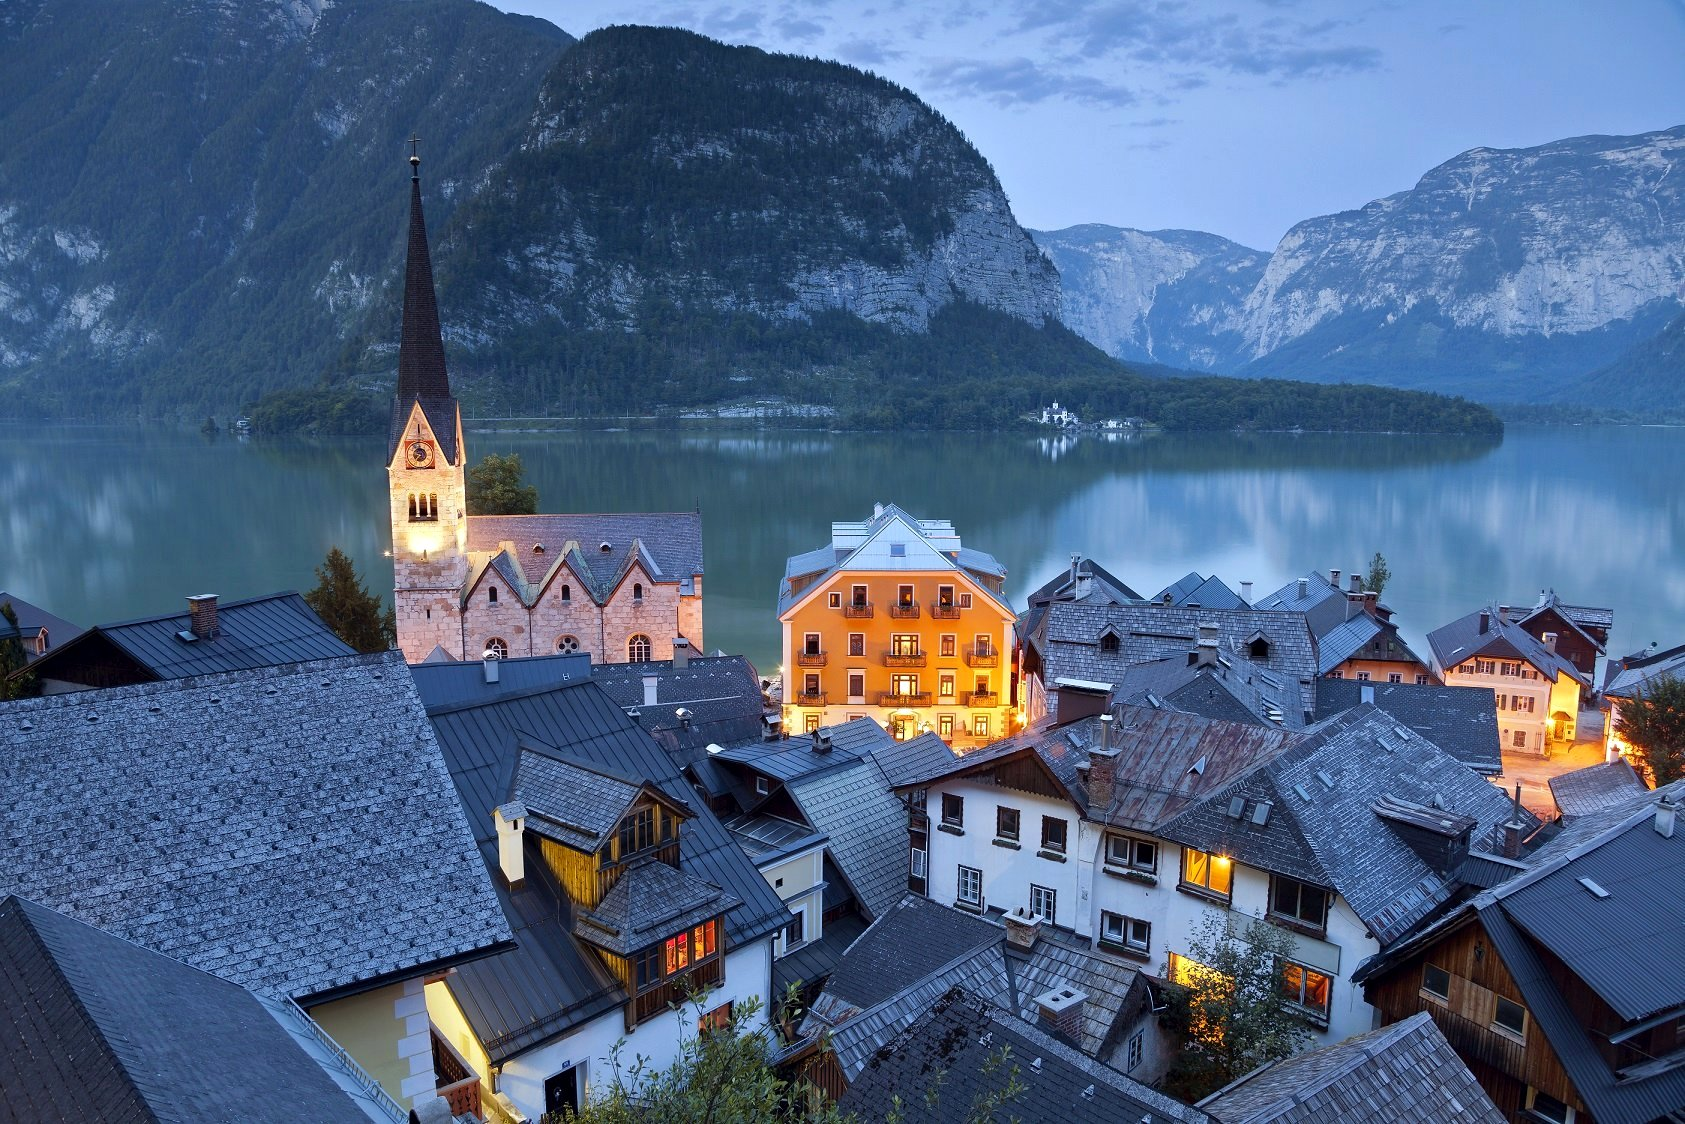 Village in Austria (O_O)